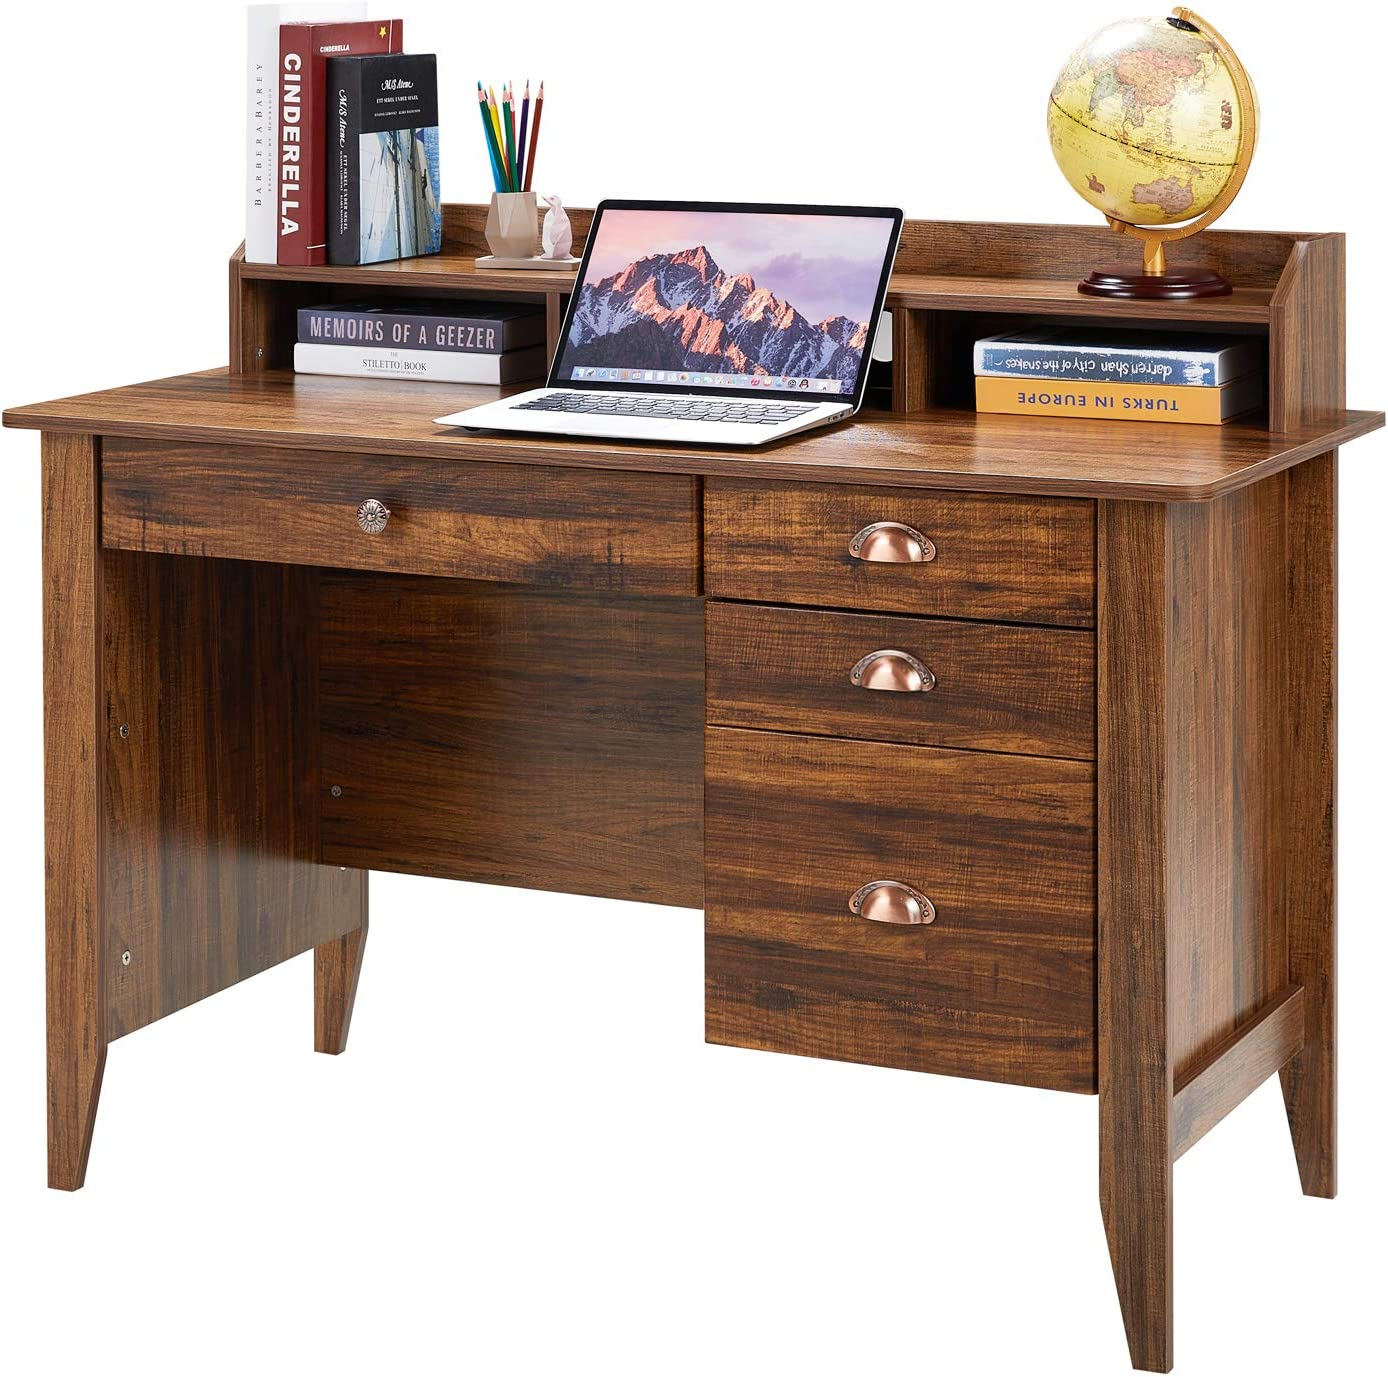 Kealive Computer Desk with 4 Drawers and Hutch Shelf, Executive Desk Home Office Desk Writing Sturdy PC Laptop Notebook Desk, Spacious Desktop Vintage Style Golden Cherry